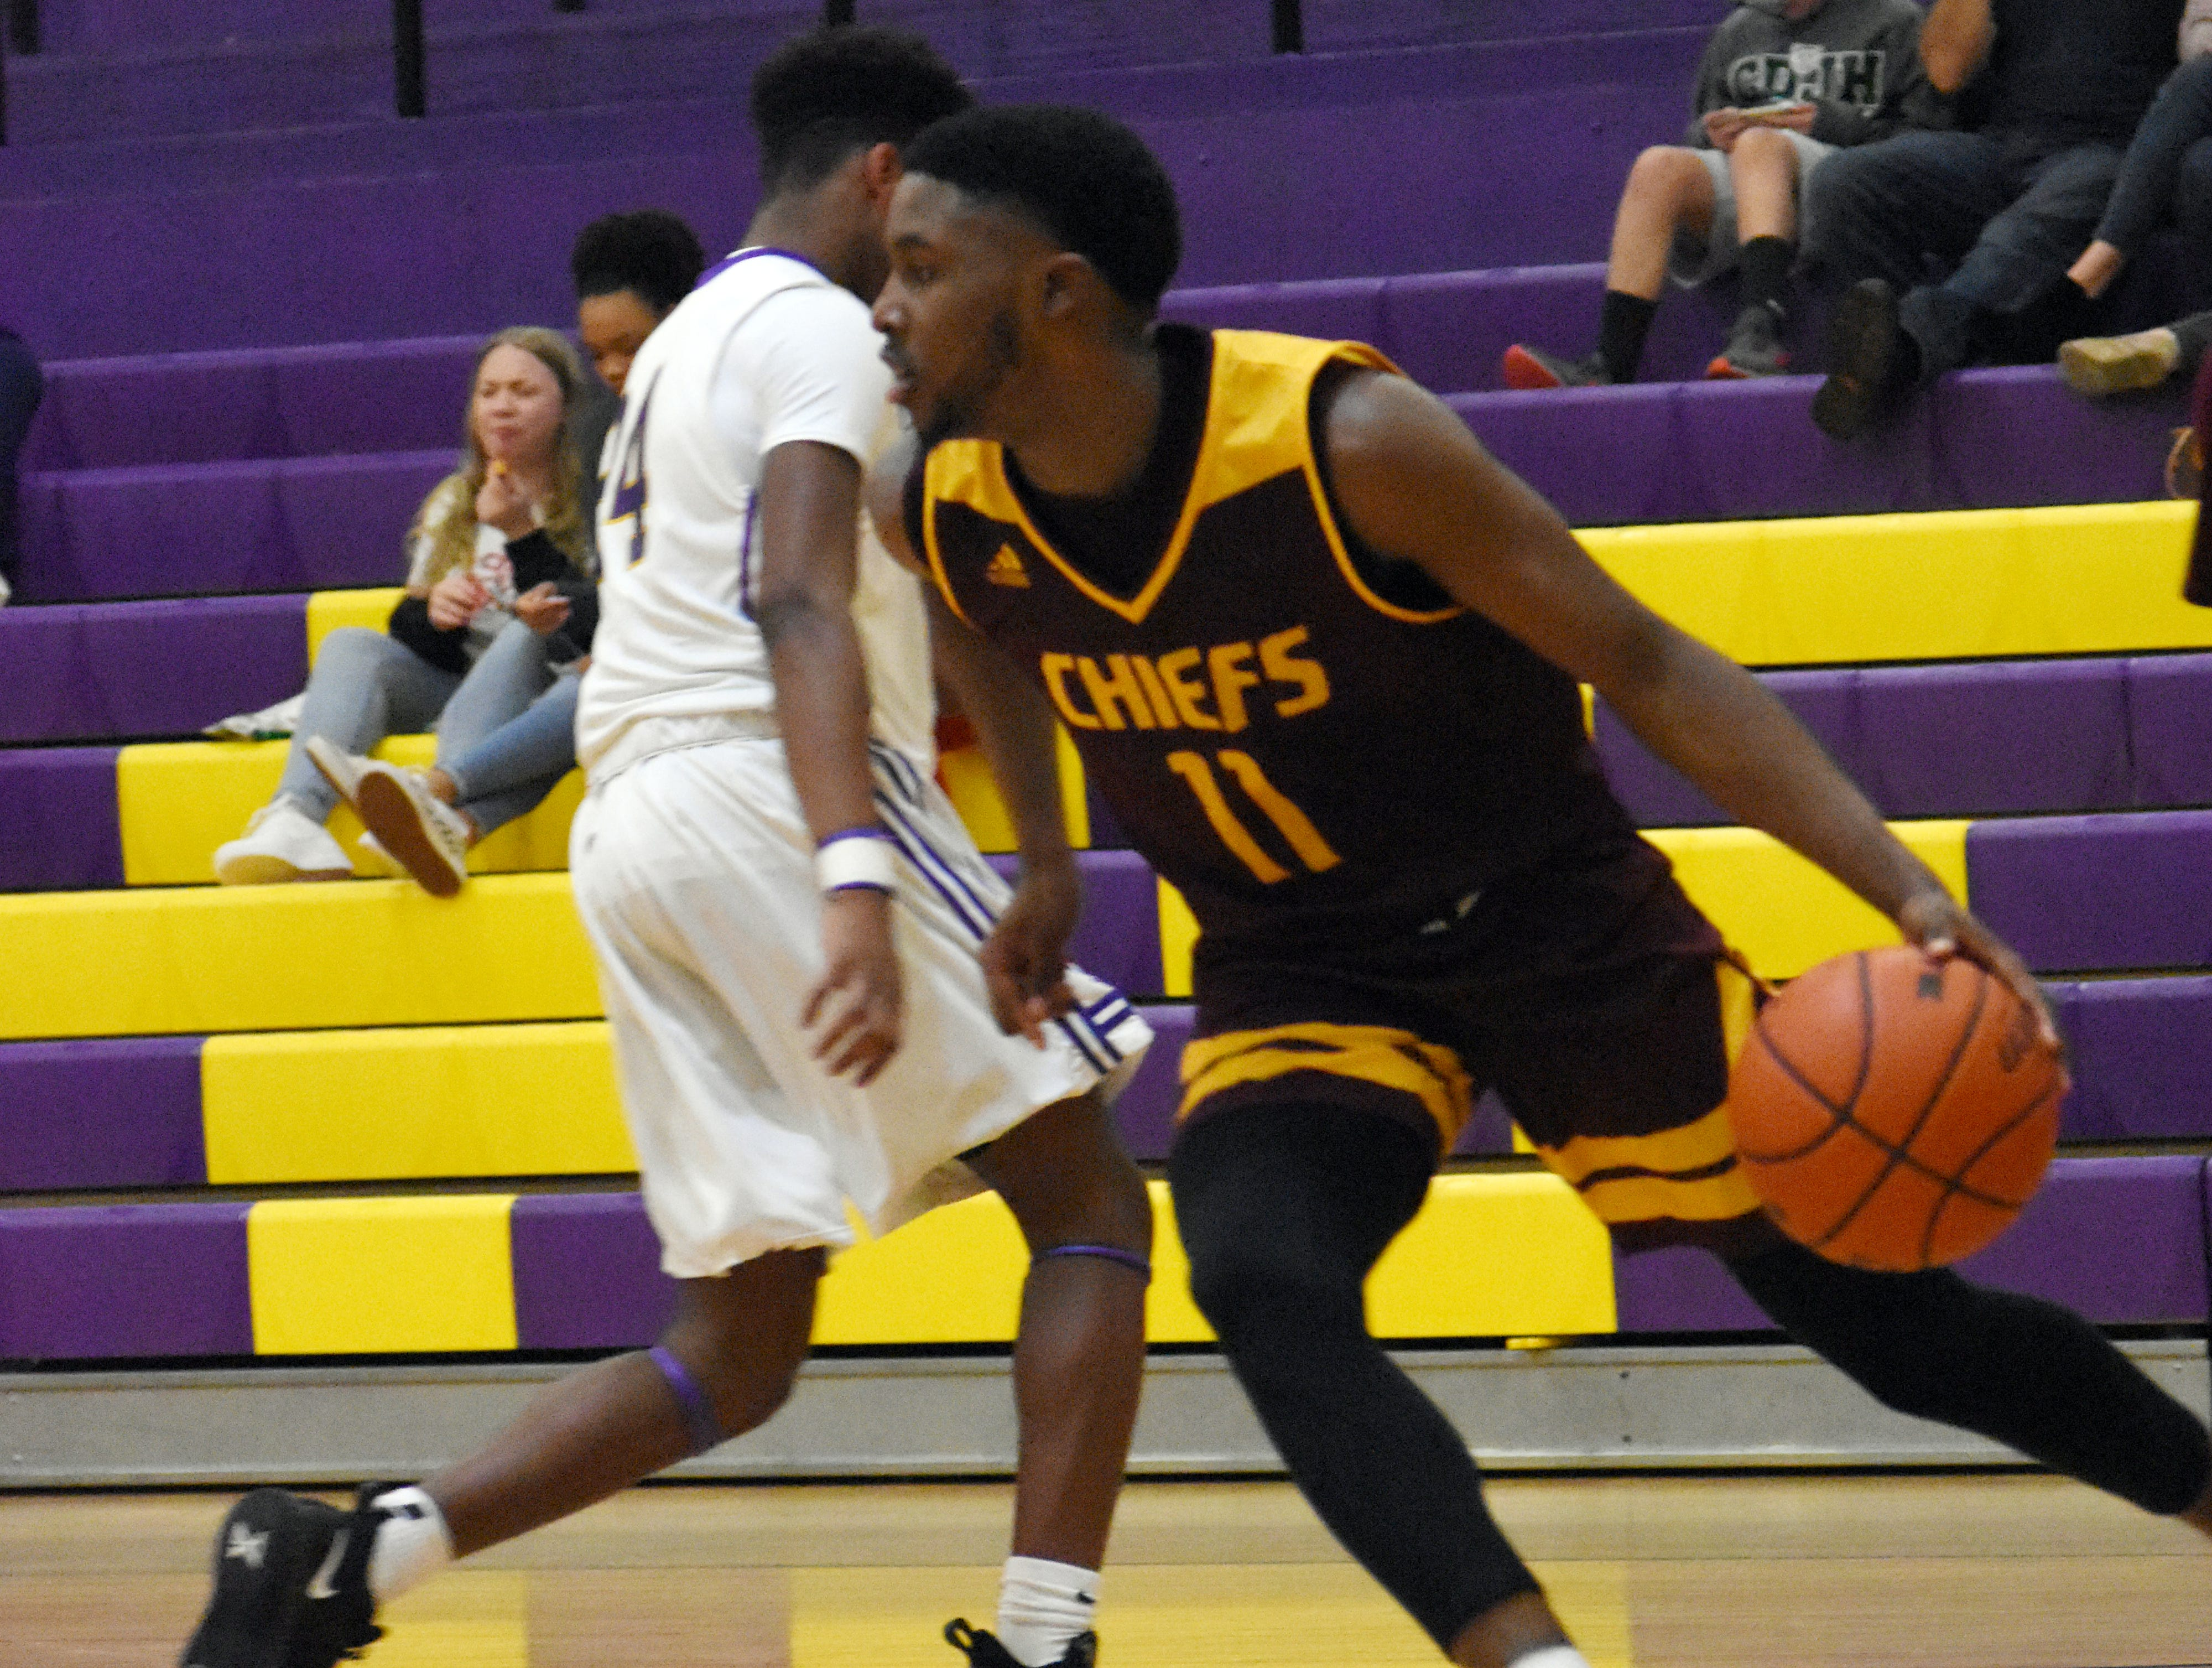 Natchitoches Central's CJ Carpenter (11) drives the ball during a game against Alexandria Senior High School Friday, Feb. 15, 2019. Natchitoches won 62-41.